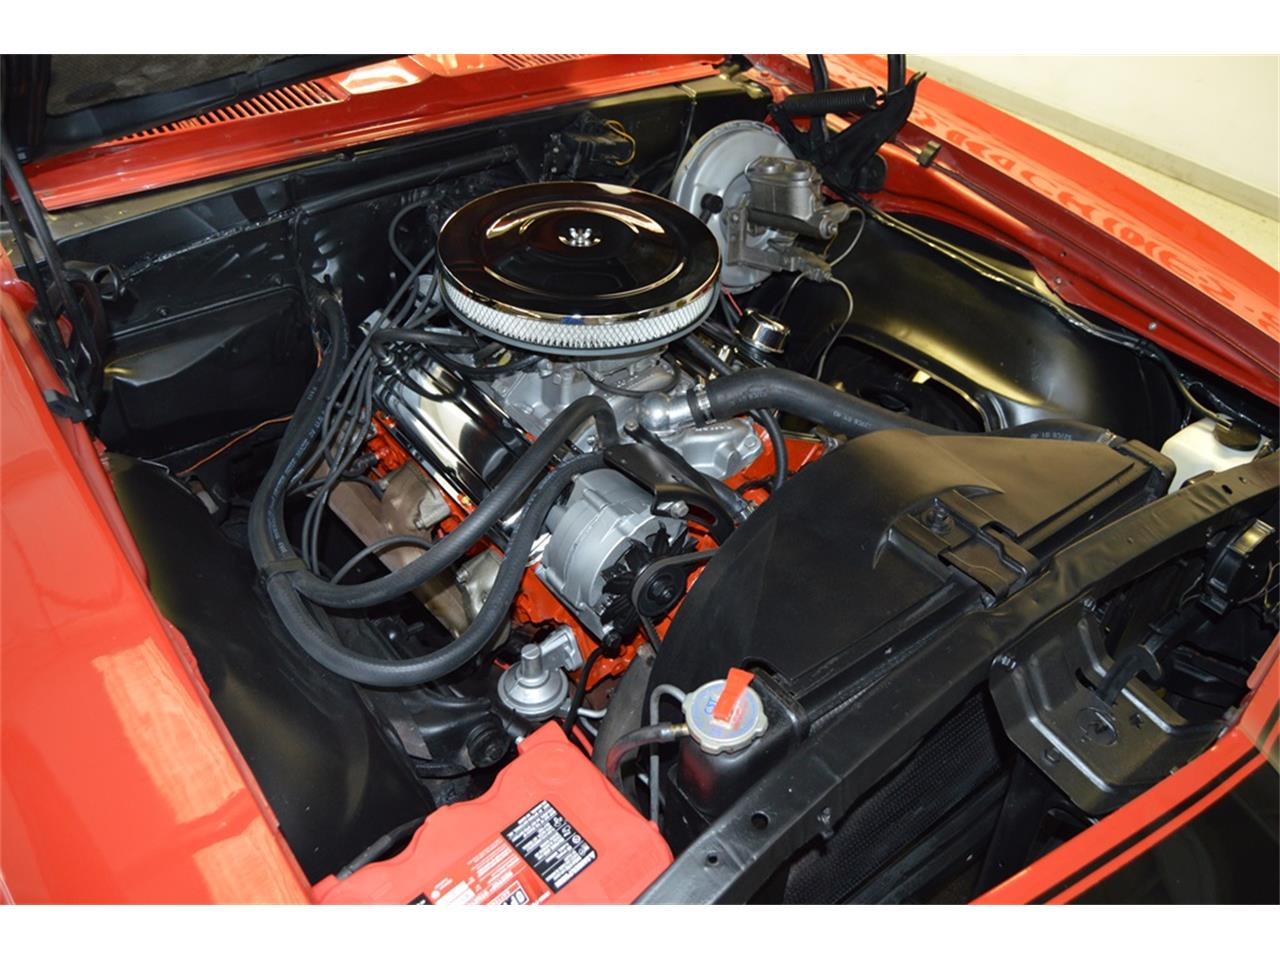 Large Picture of 1967 Chevrolet Camaro located in Georgia - $30,900.00 Offered by Sparky's Machines - MDDP